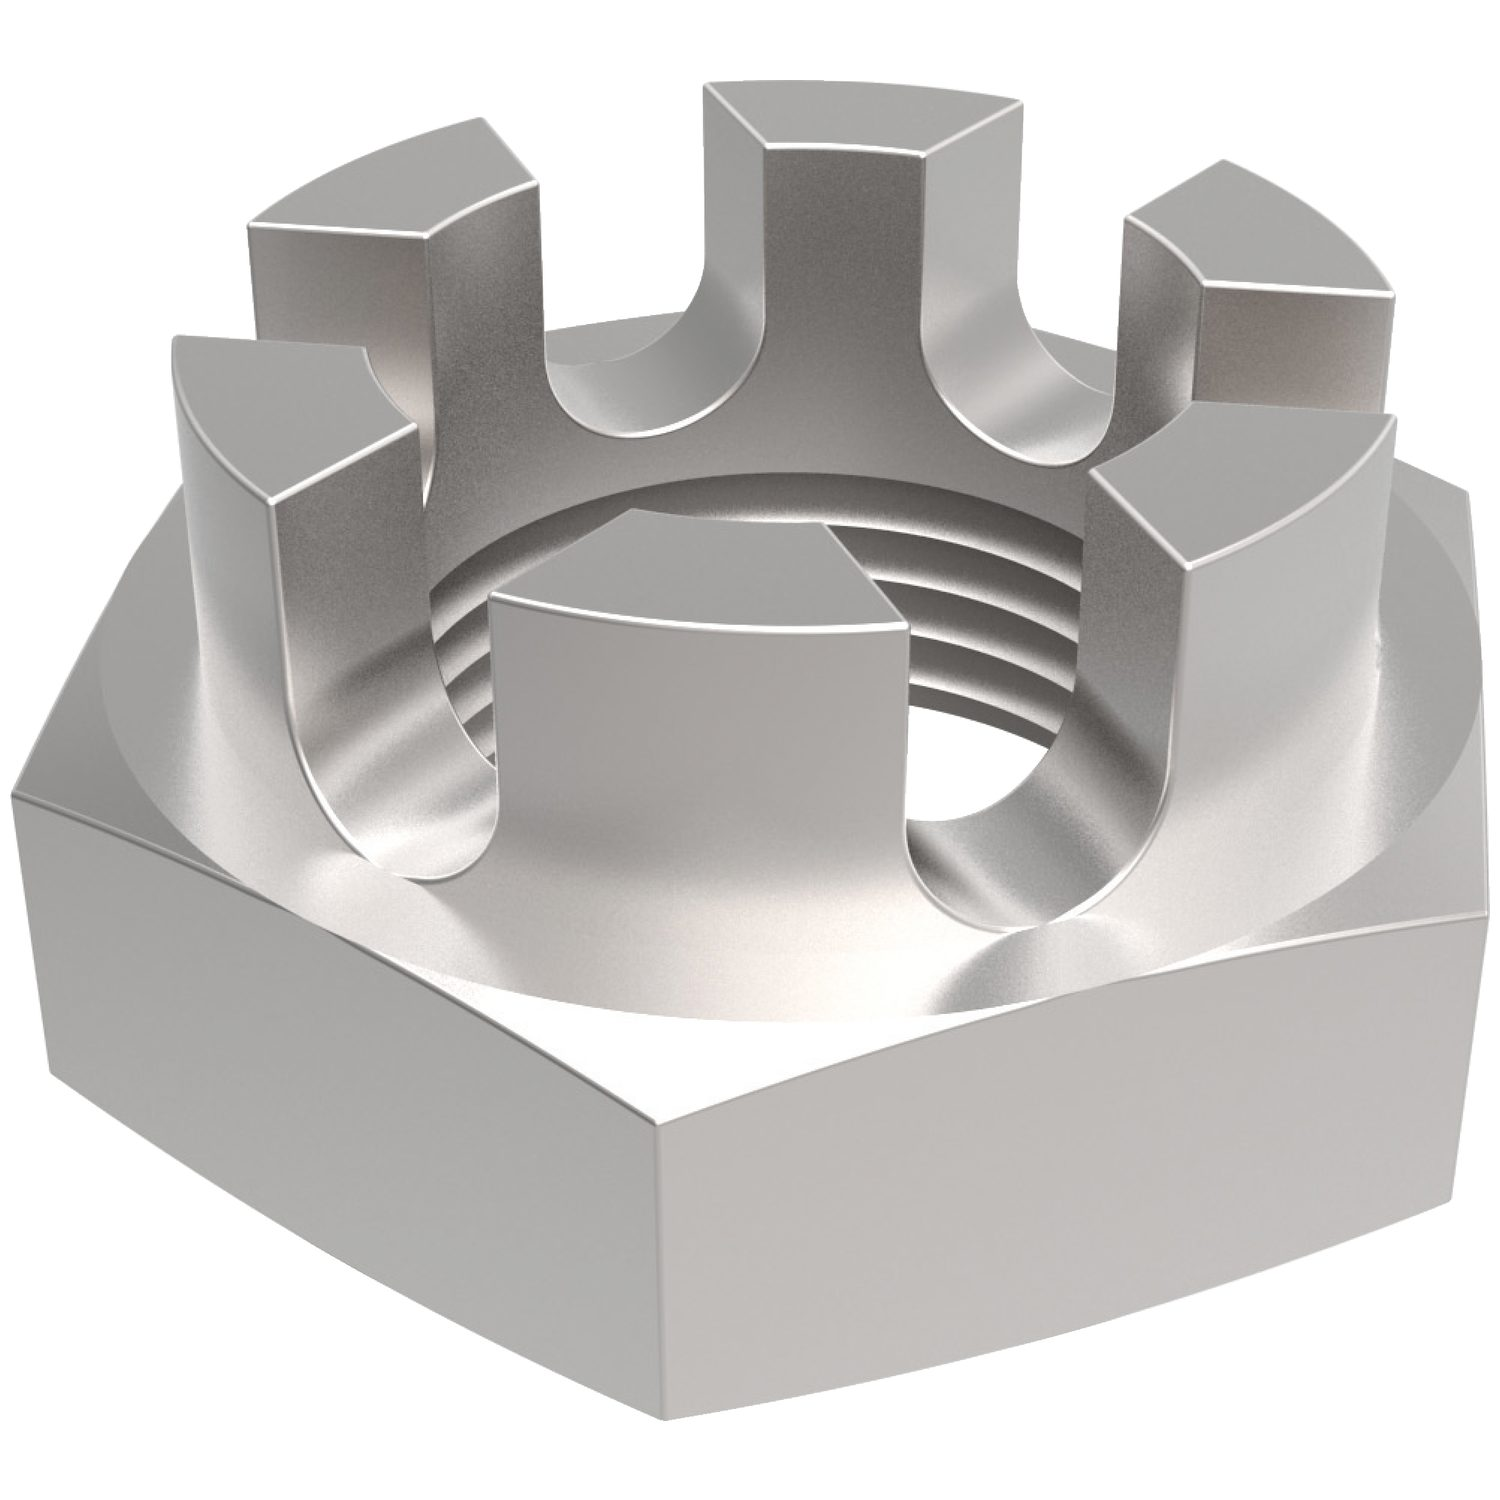 Hexagon Castle Nuts Thin Type Thin hexagon castle nuts made from A4 stainless steel. Sizes from M6 to M30. Manufactured to DIN 937.